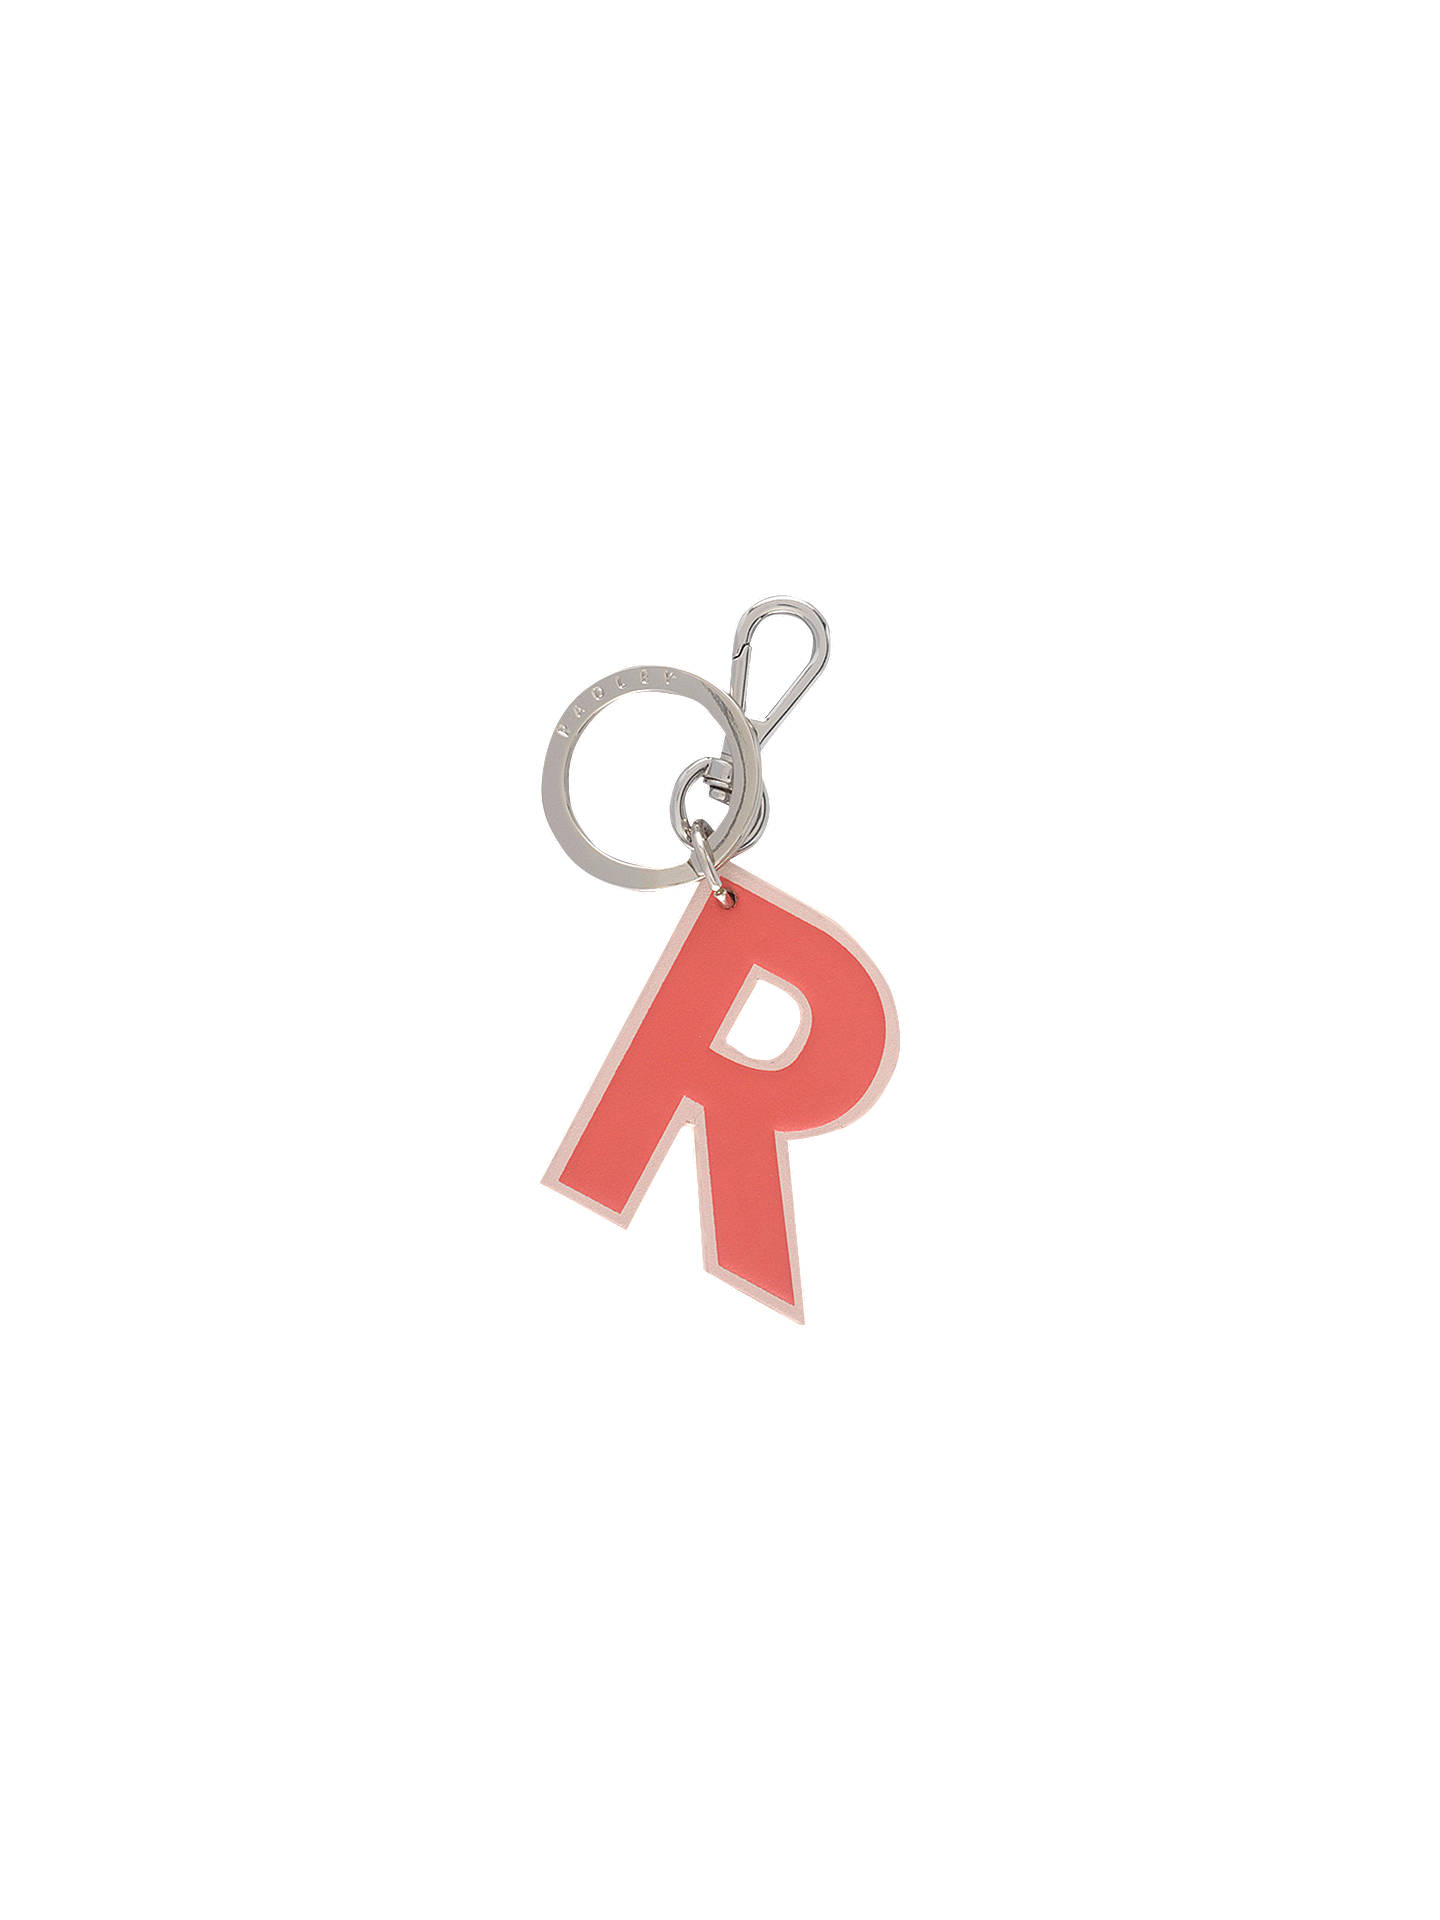 Buy Radley Flex Letters Small Bag Charm, Pink R Online at johnlewis.com